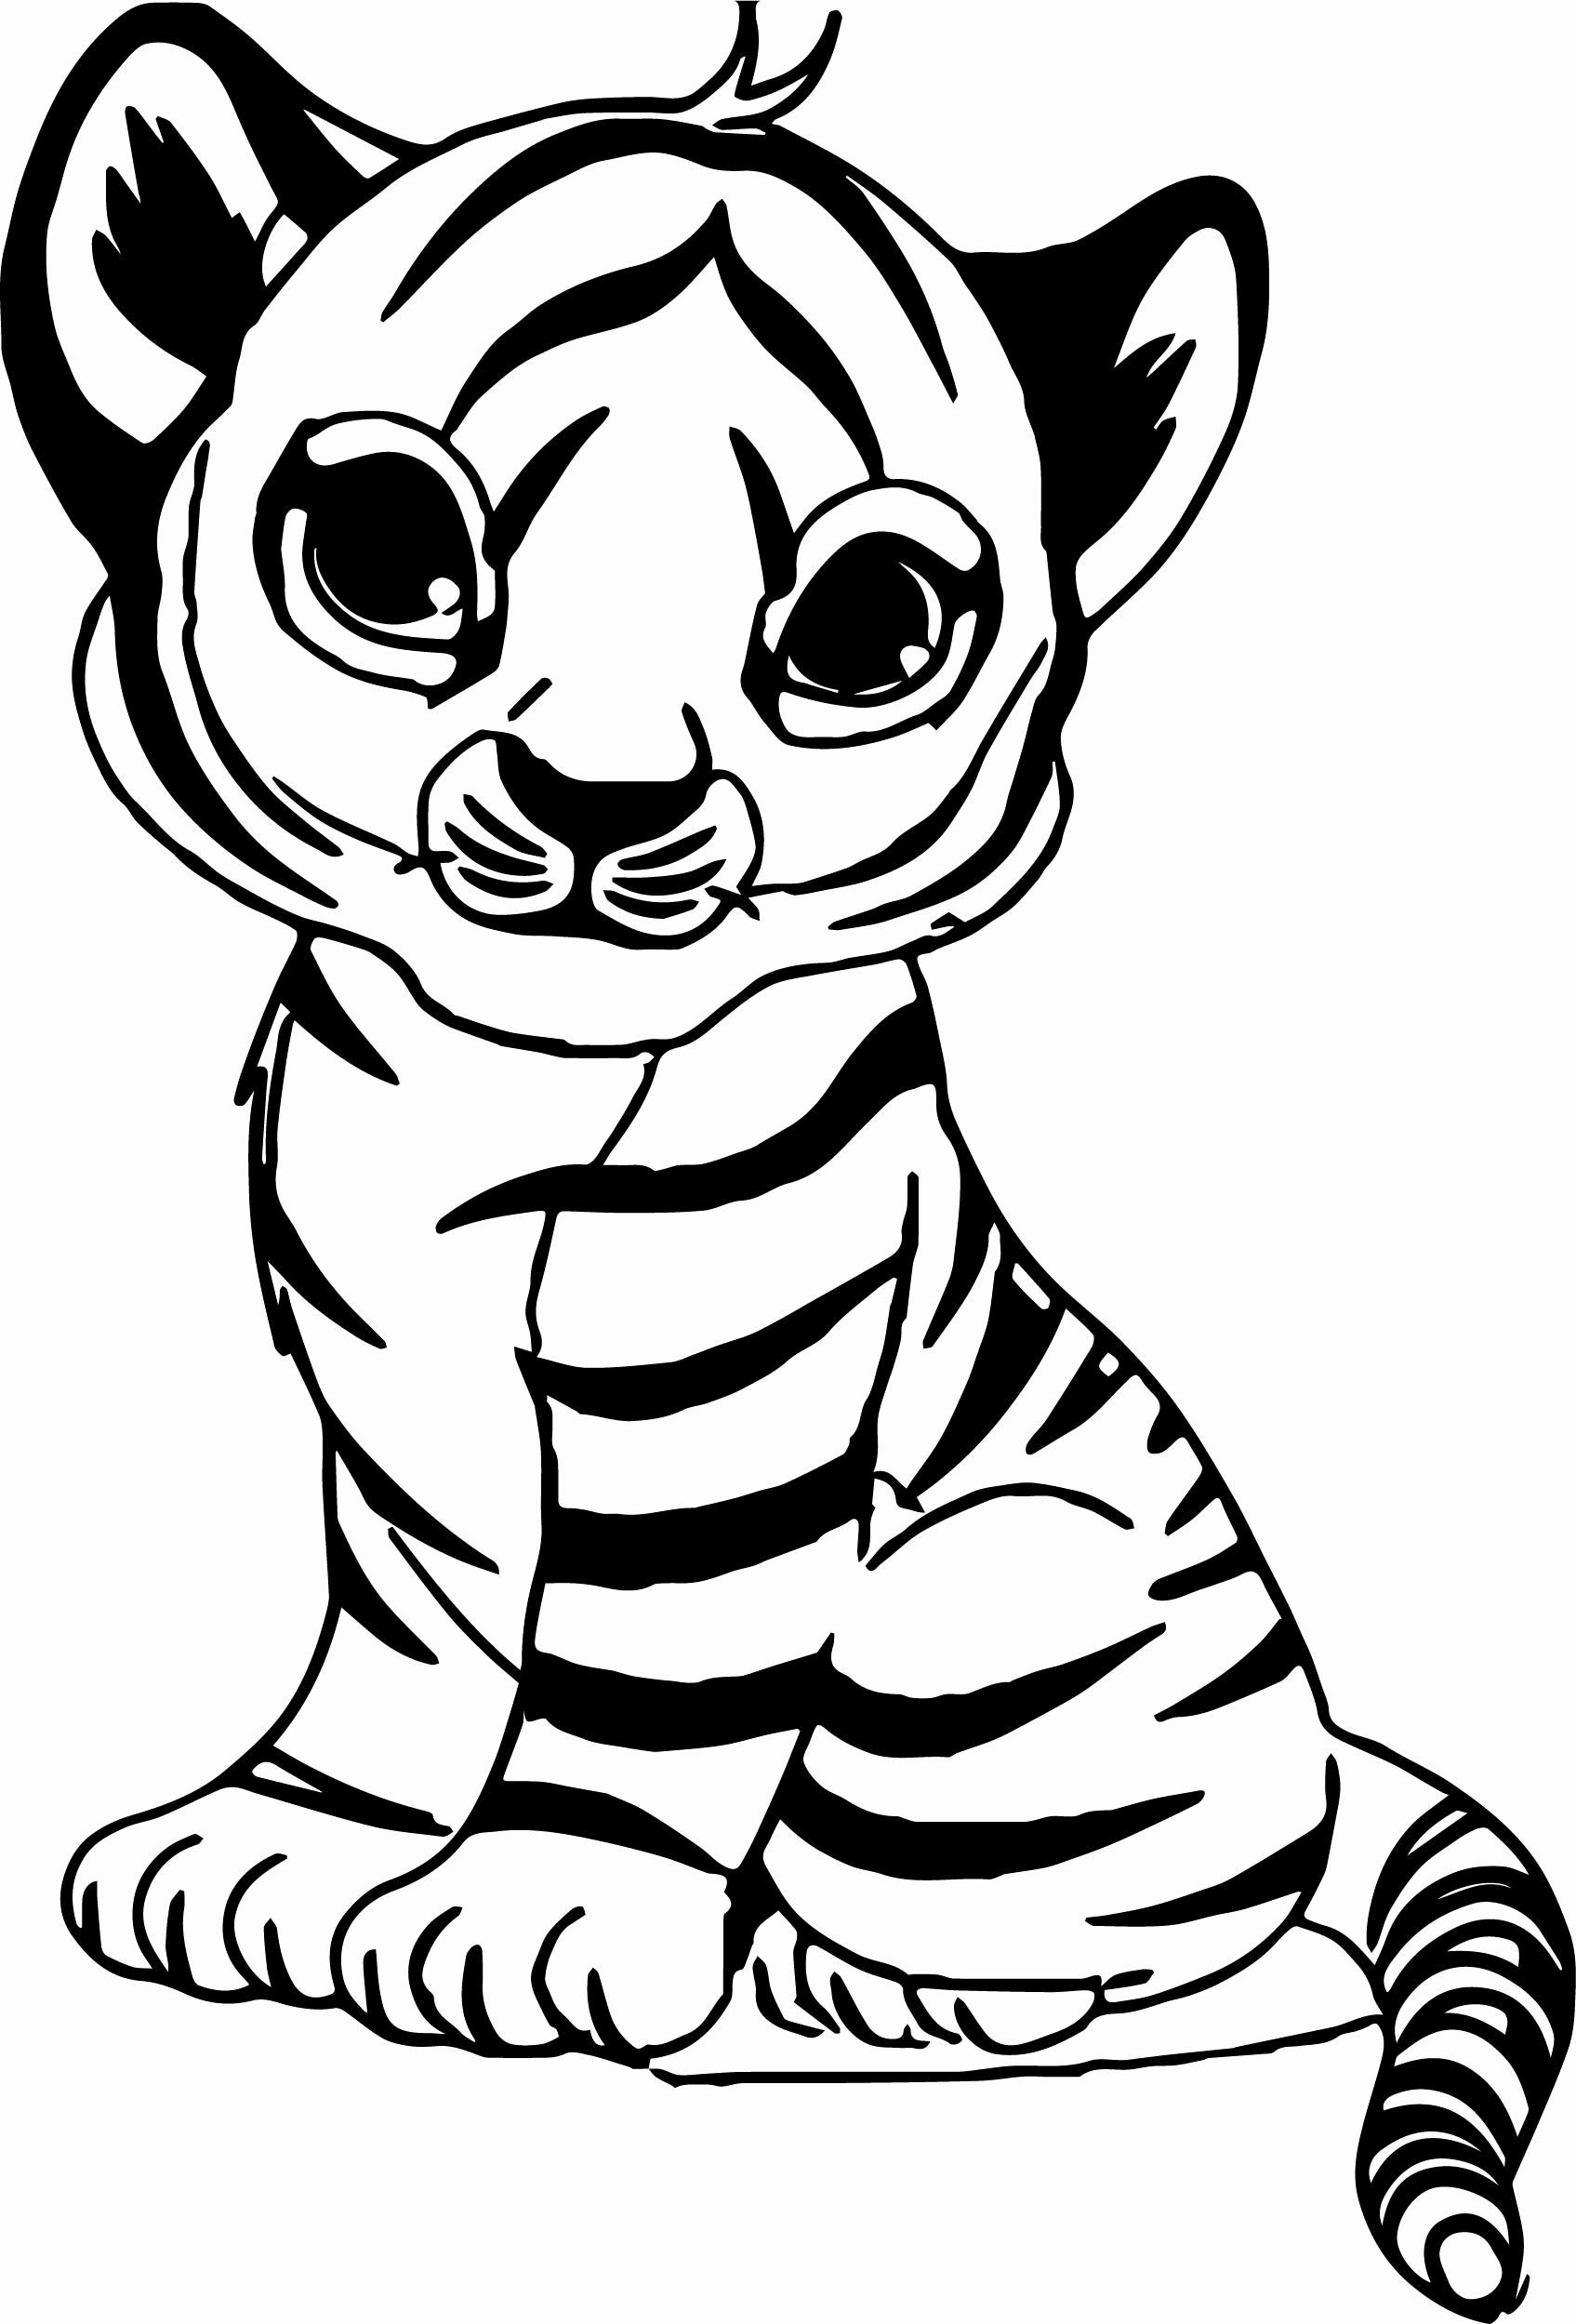 printable zoo animal coloring pages 32 cute coloring books zoo animal coloring pages printable pages zoo animal coloring